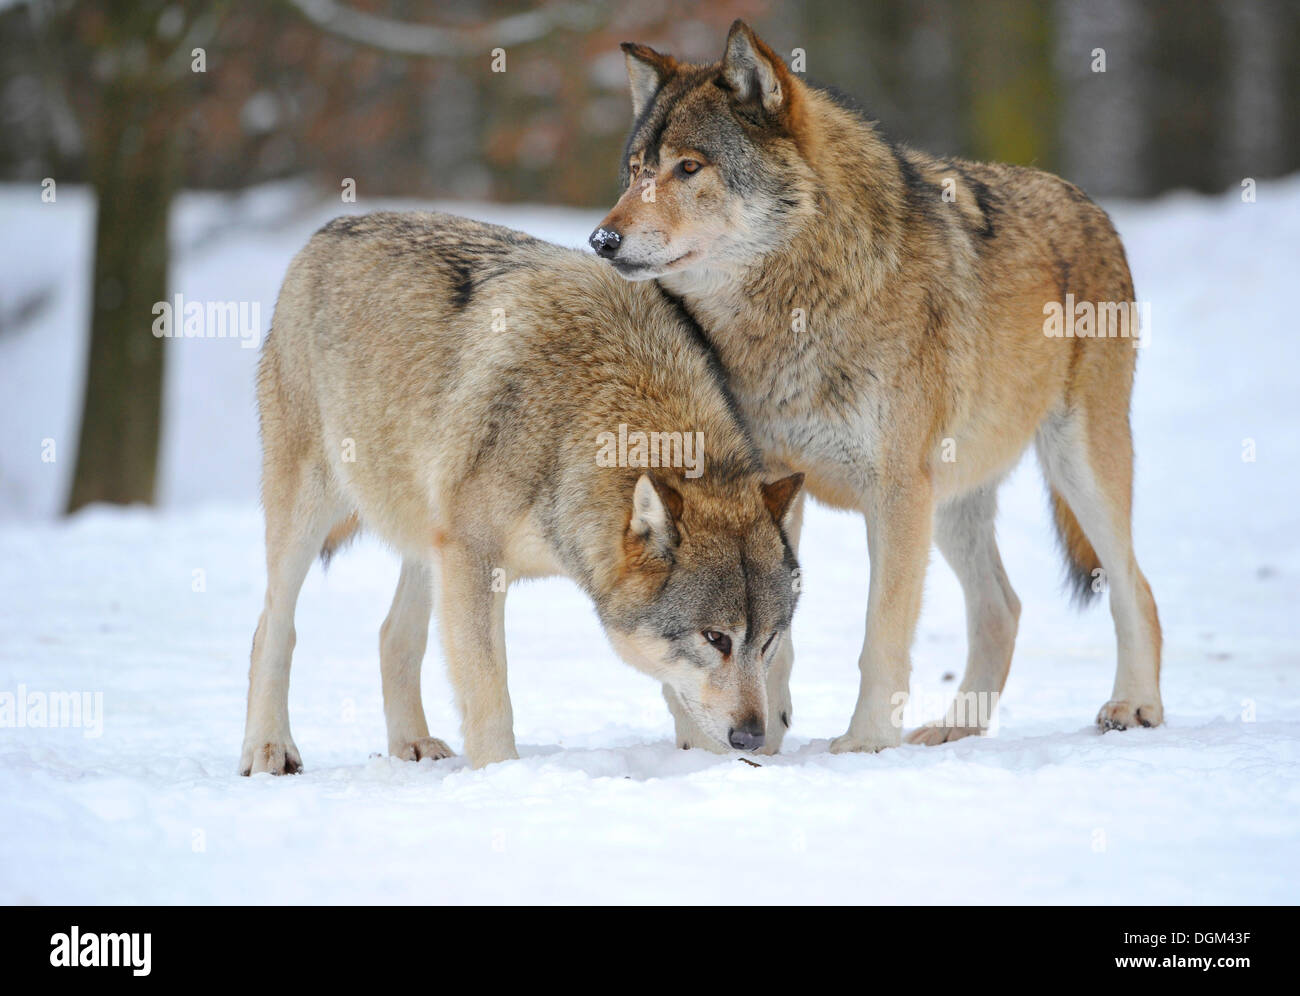 Mackenzie Wolves, Eastern wolf, Canadian wolf (Canis lupus occidentalis) in snow Stock Photo